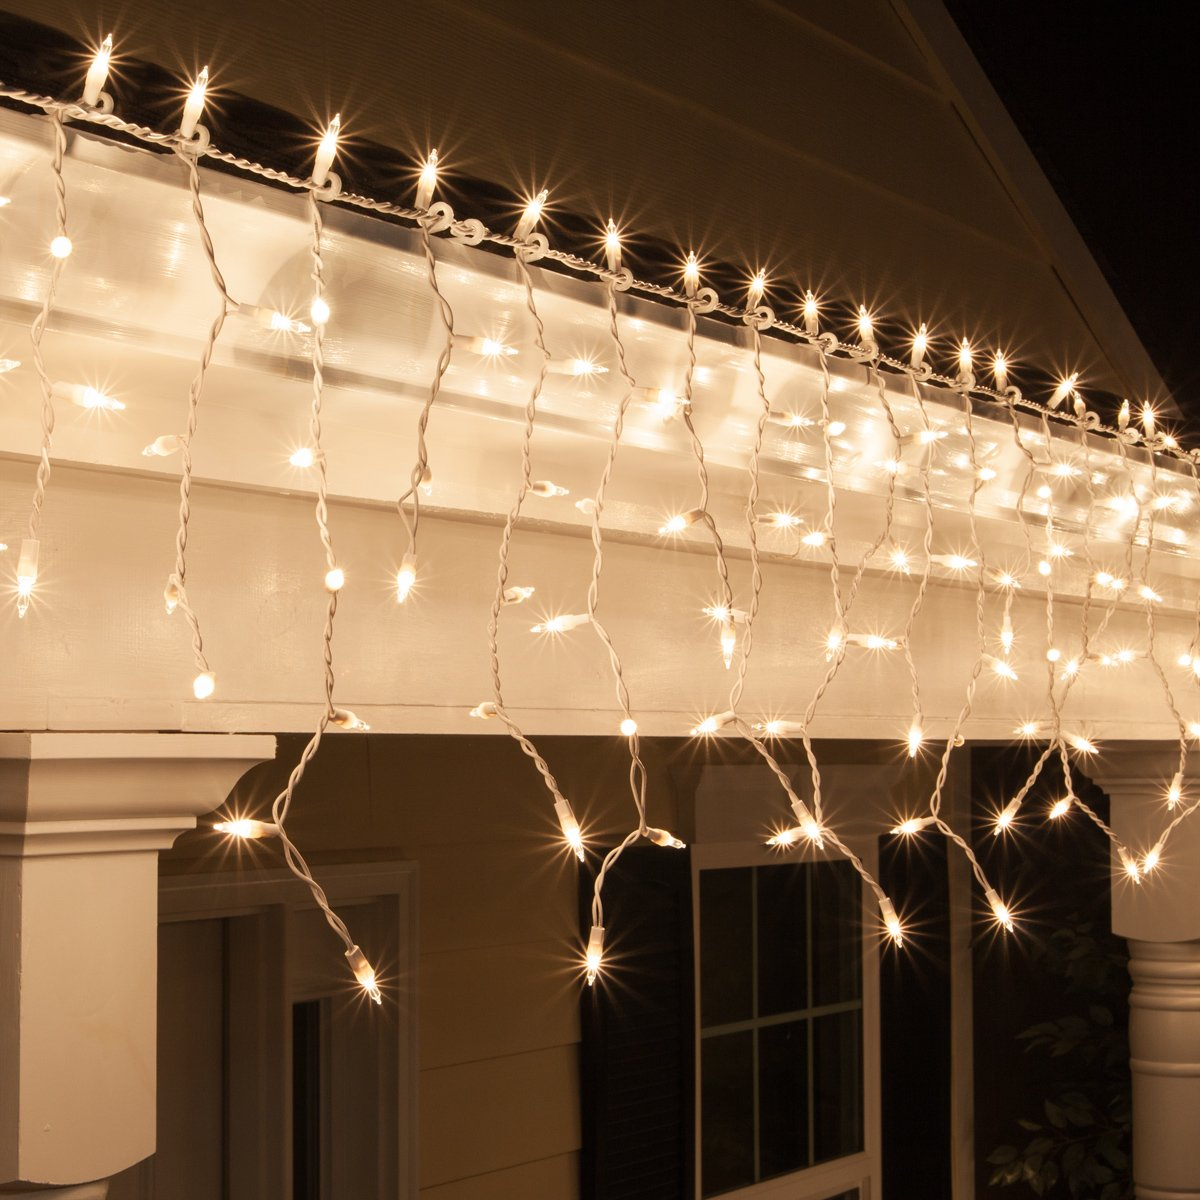 Amazon 9 ft 150 clear icicle lights white wire indoor amazon 9 ft 150 clear icicle lights white wire indoor outdoor christmas lights outdoor holiday icicle lights home kitchen aloadofball Choice Image